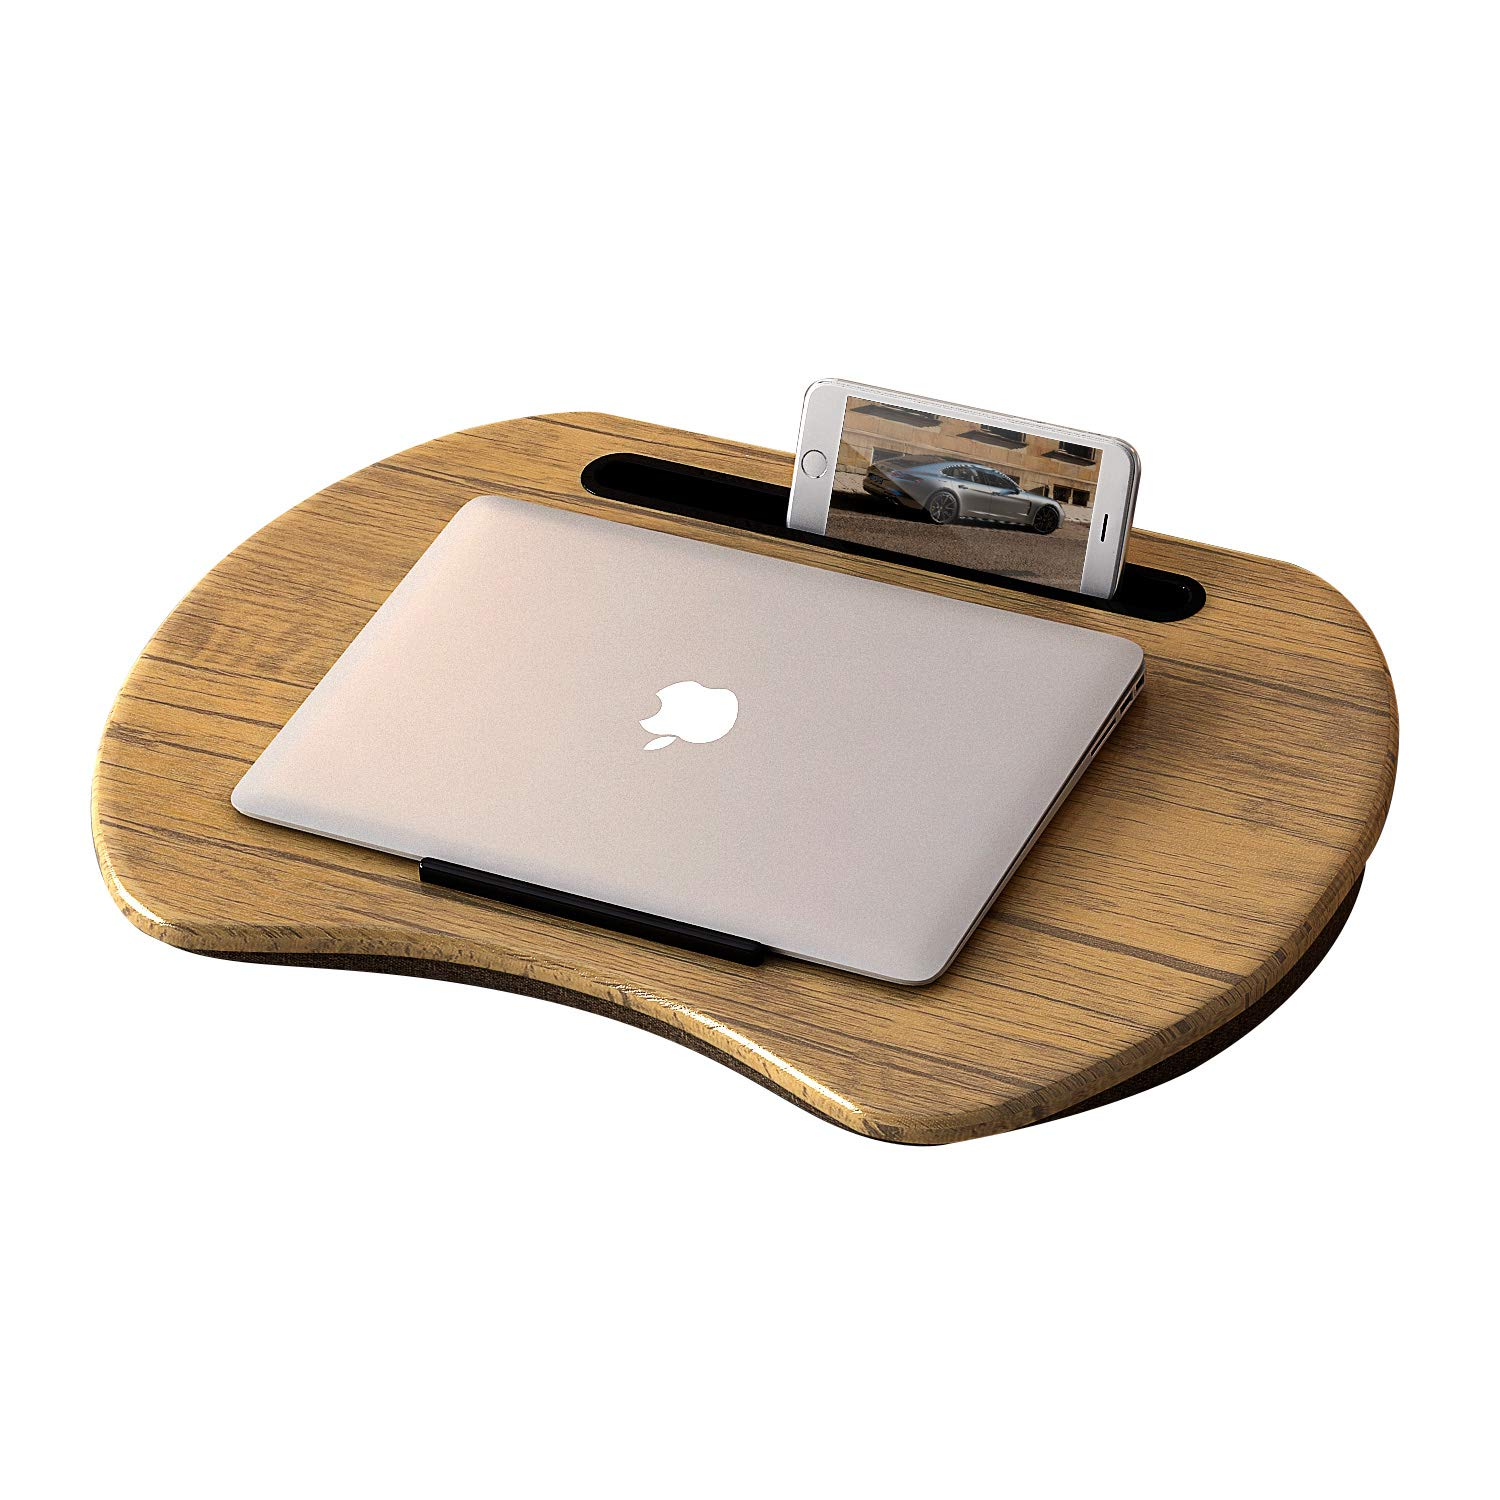 HOME BI Lap Desk for Laptop, Portable Laptop Table with Phone Tablet Holder, Fits up to 15'' Laptop and 9.7'' Tablet (Brown)